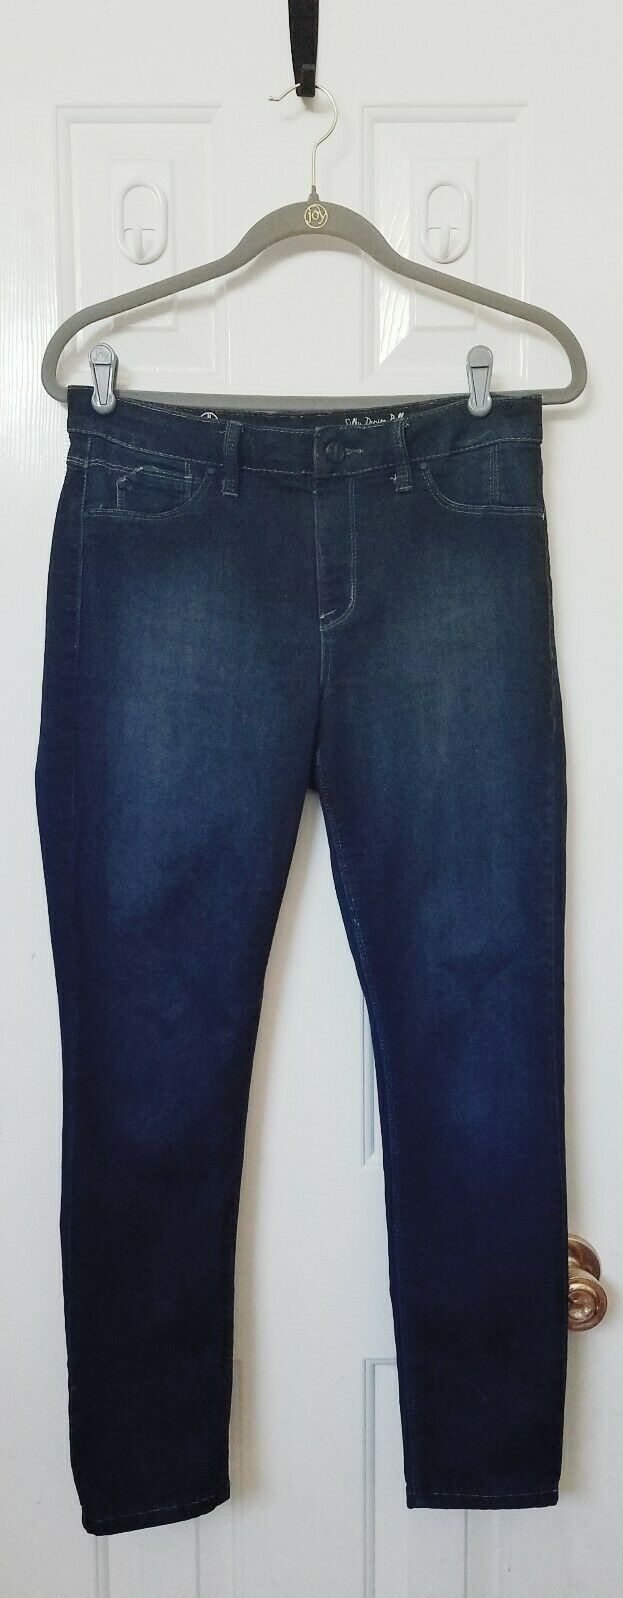 New Laurie Felt Hot In Hollywood  Ankle Skinny Jeans Sz Medium